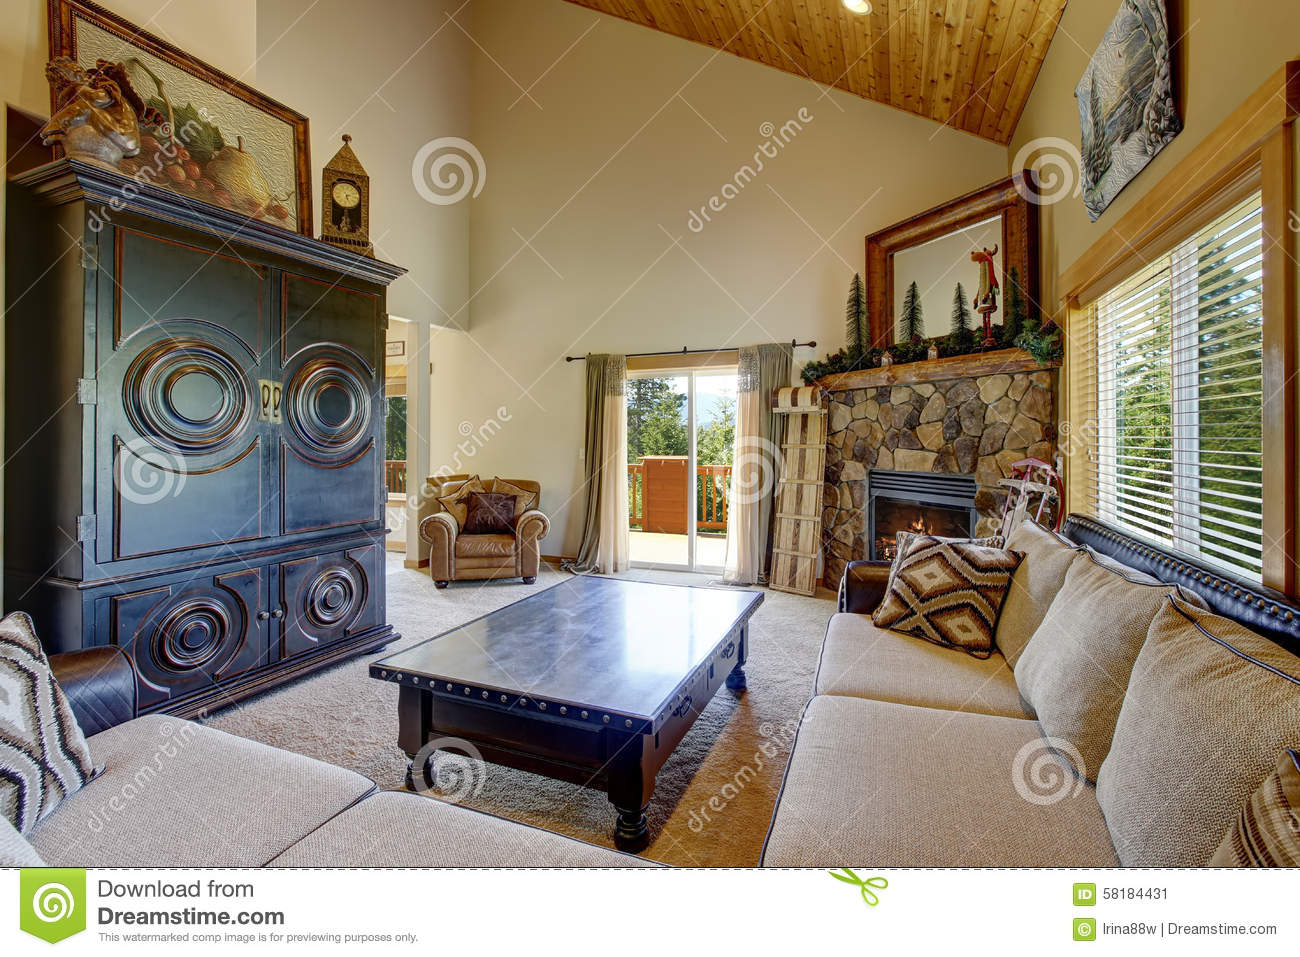 Mountain style decor in modern day living room stock for Modern day home decor